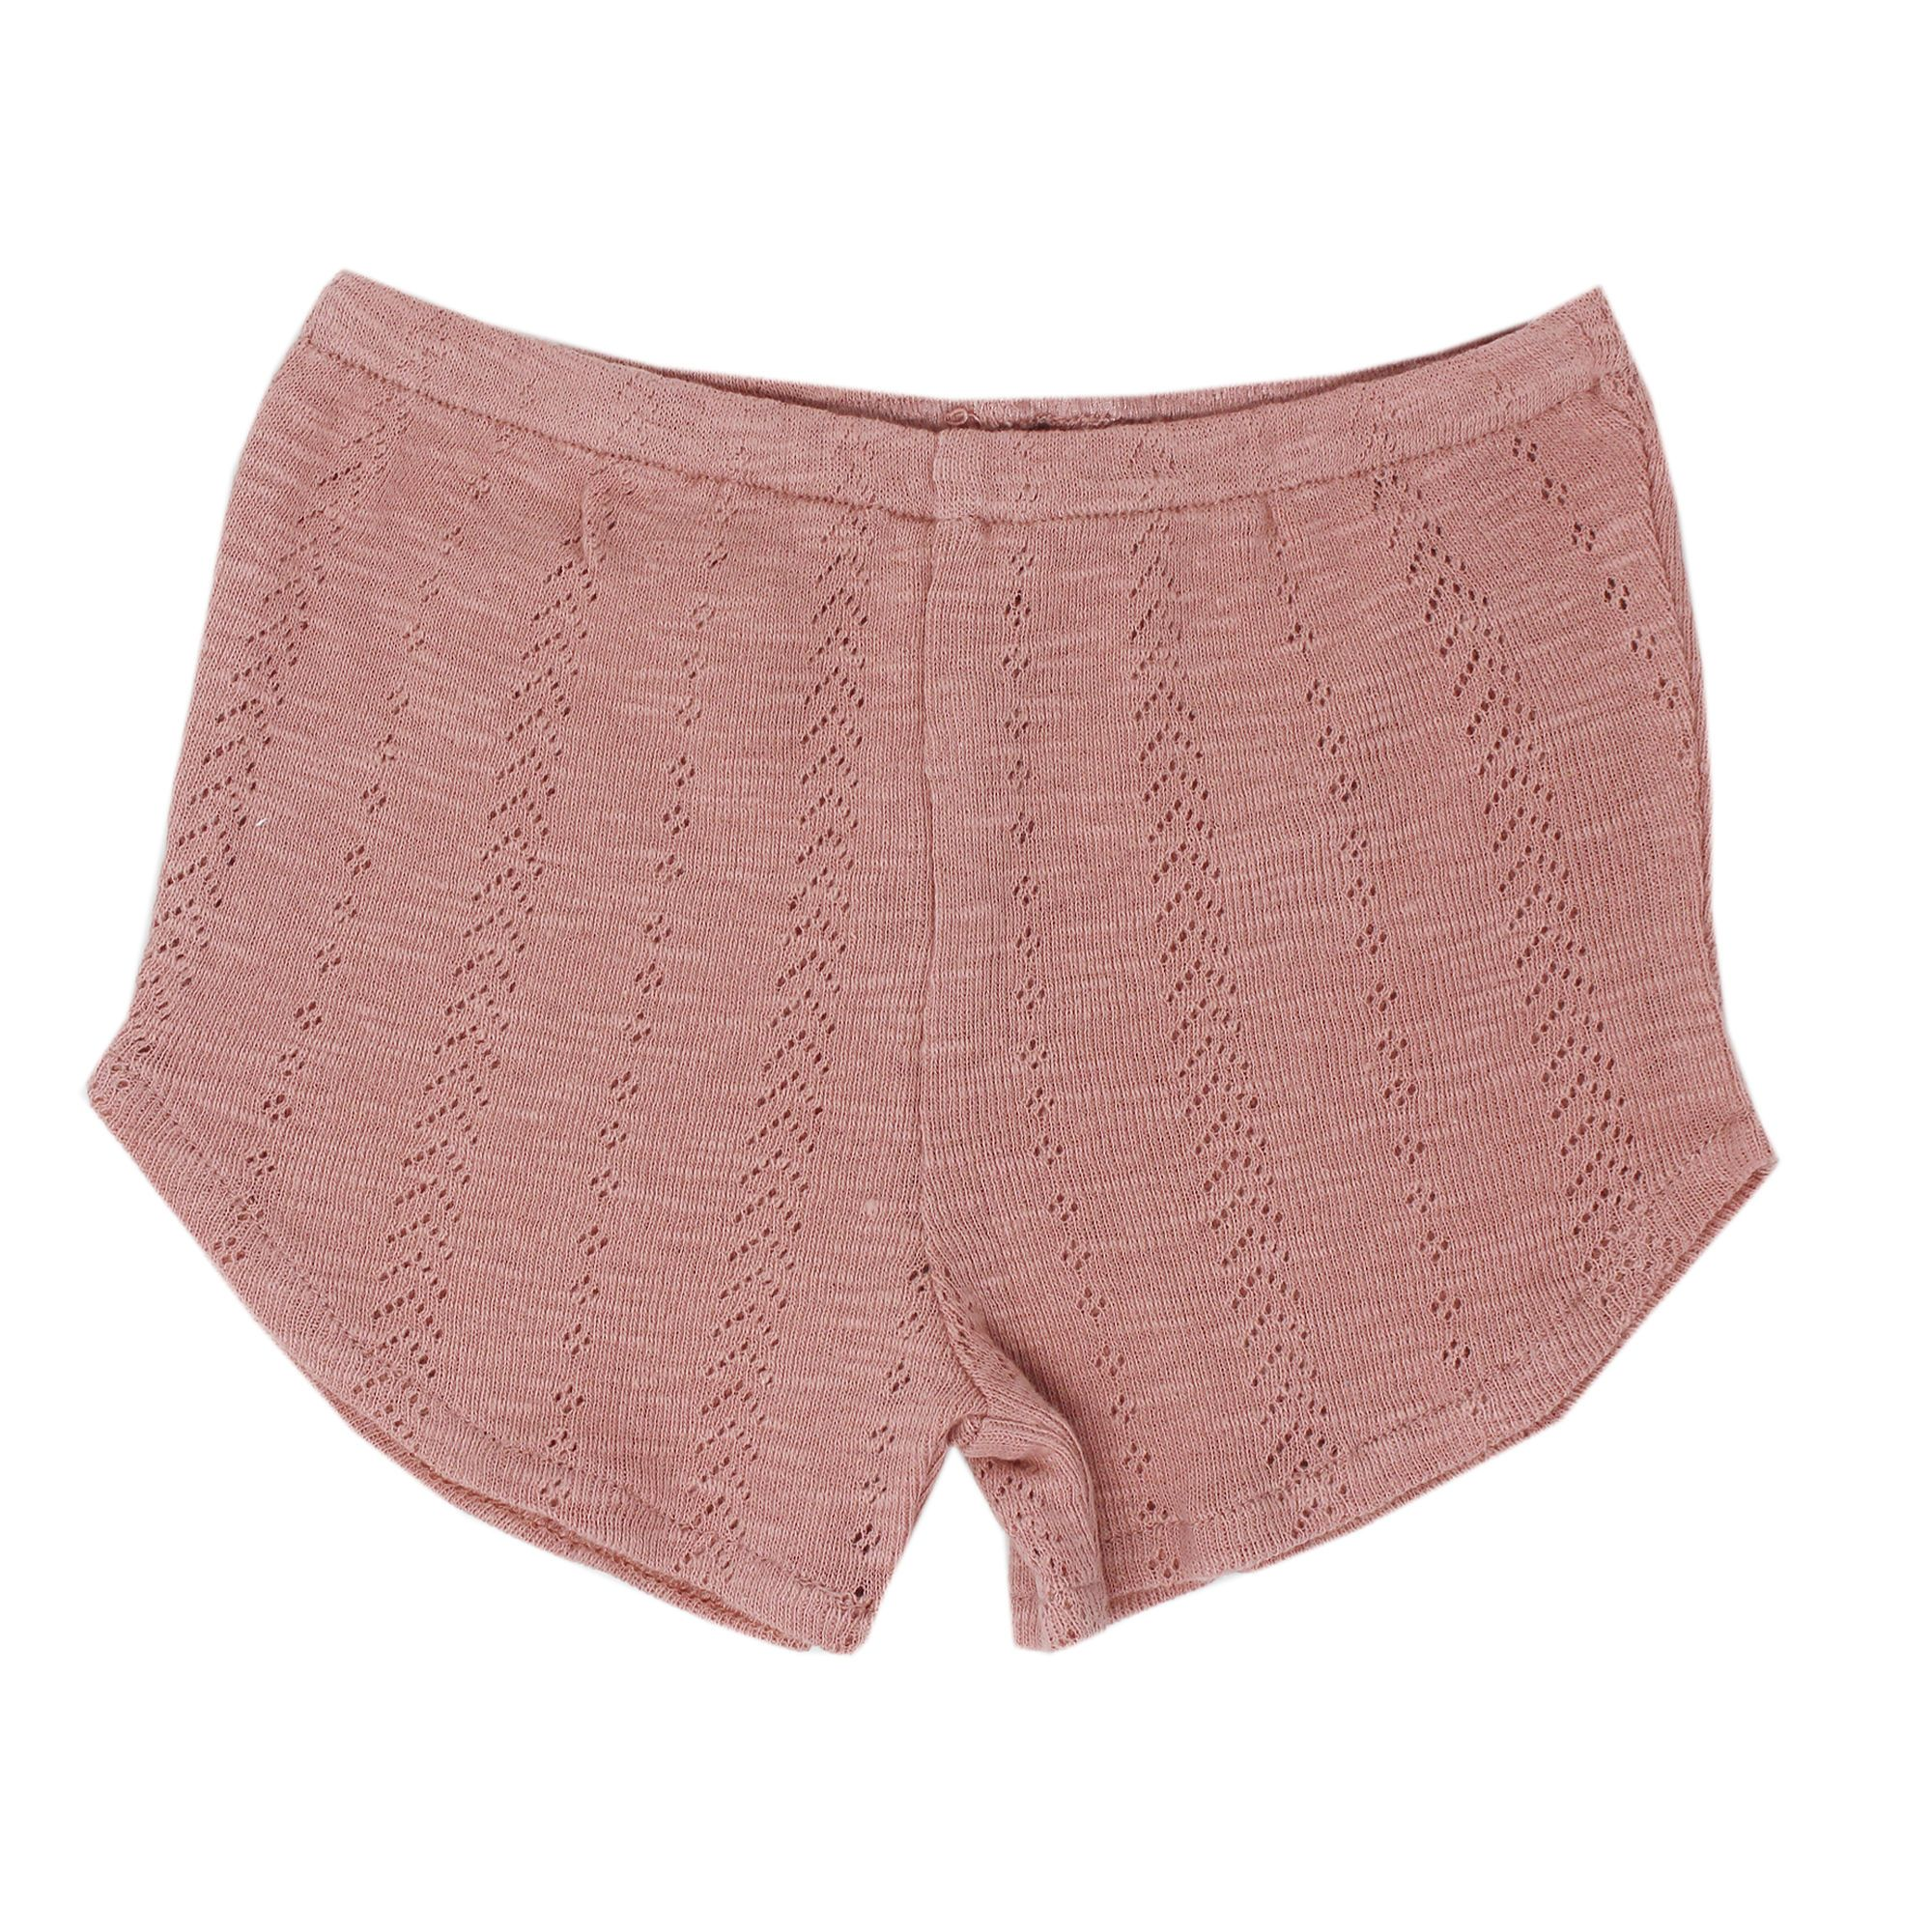 Kids Organic Cotton Pointelle Tap Shorts - Mauve - Project Nursery